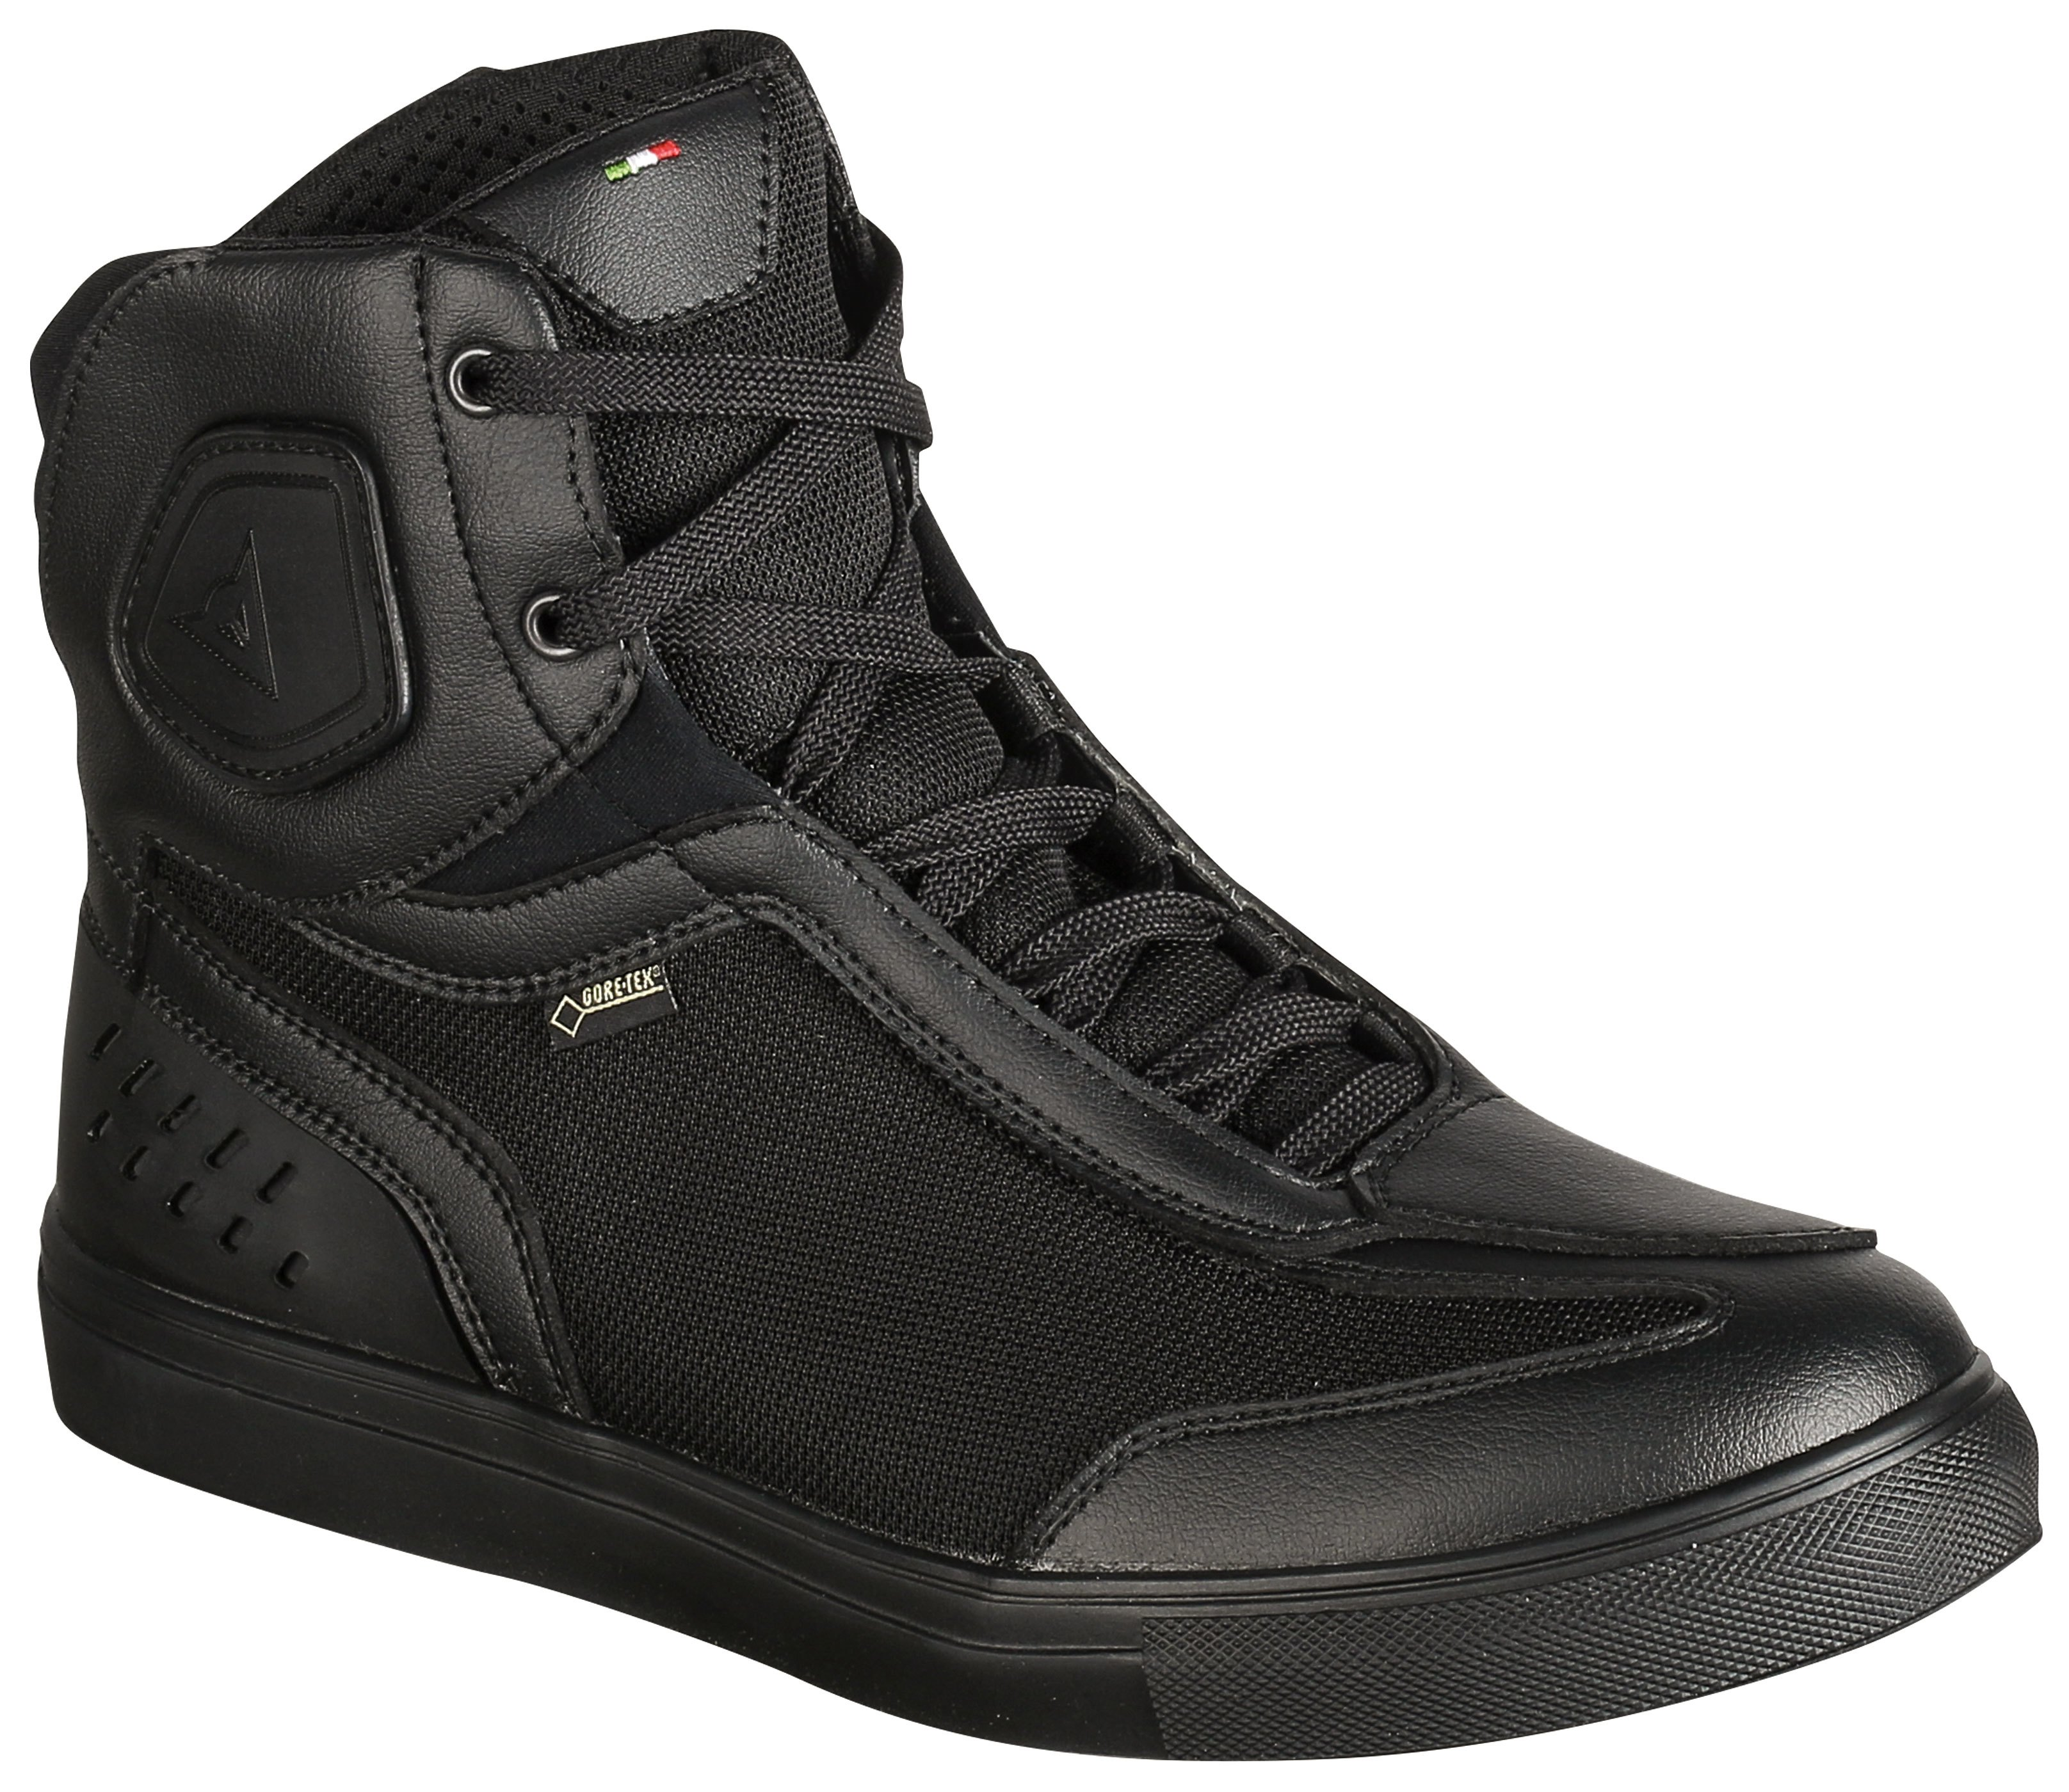 Dainese Street Darker GTX Shoes